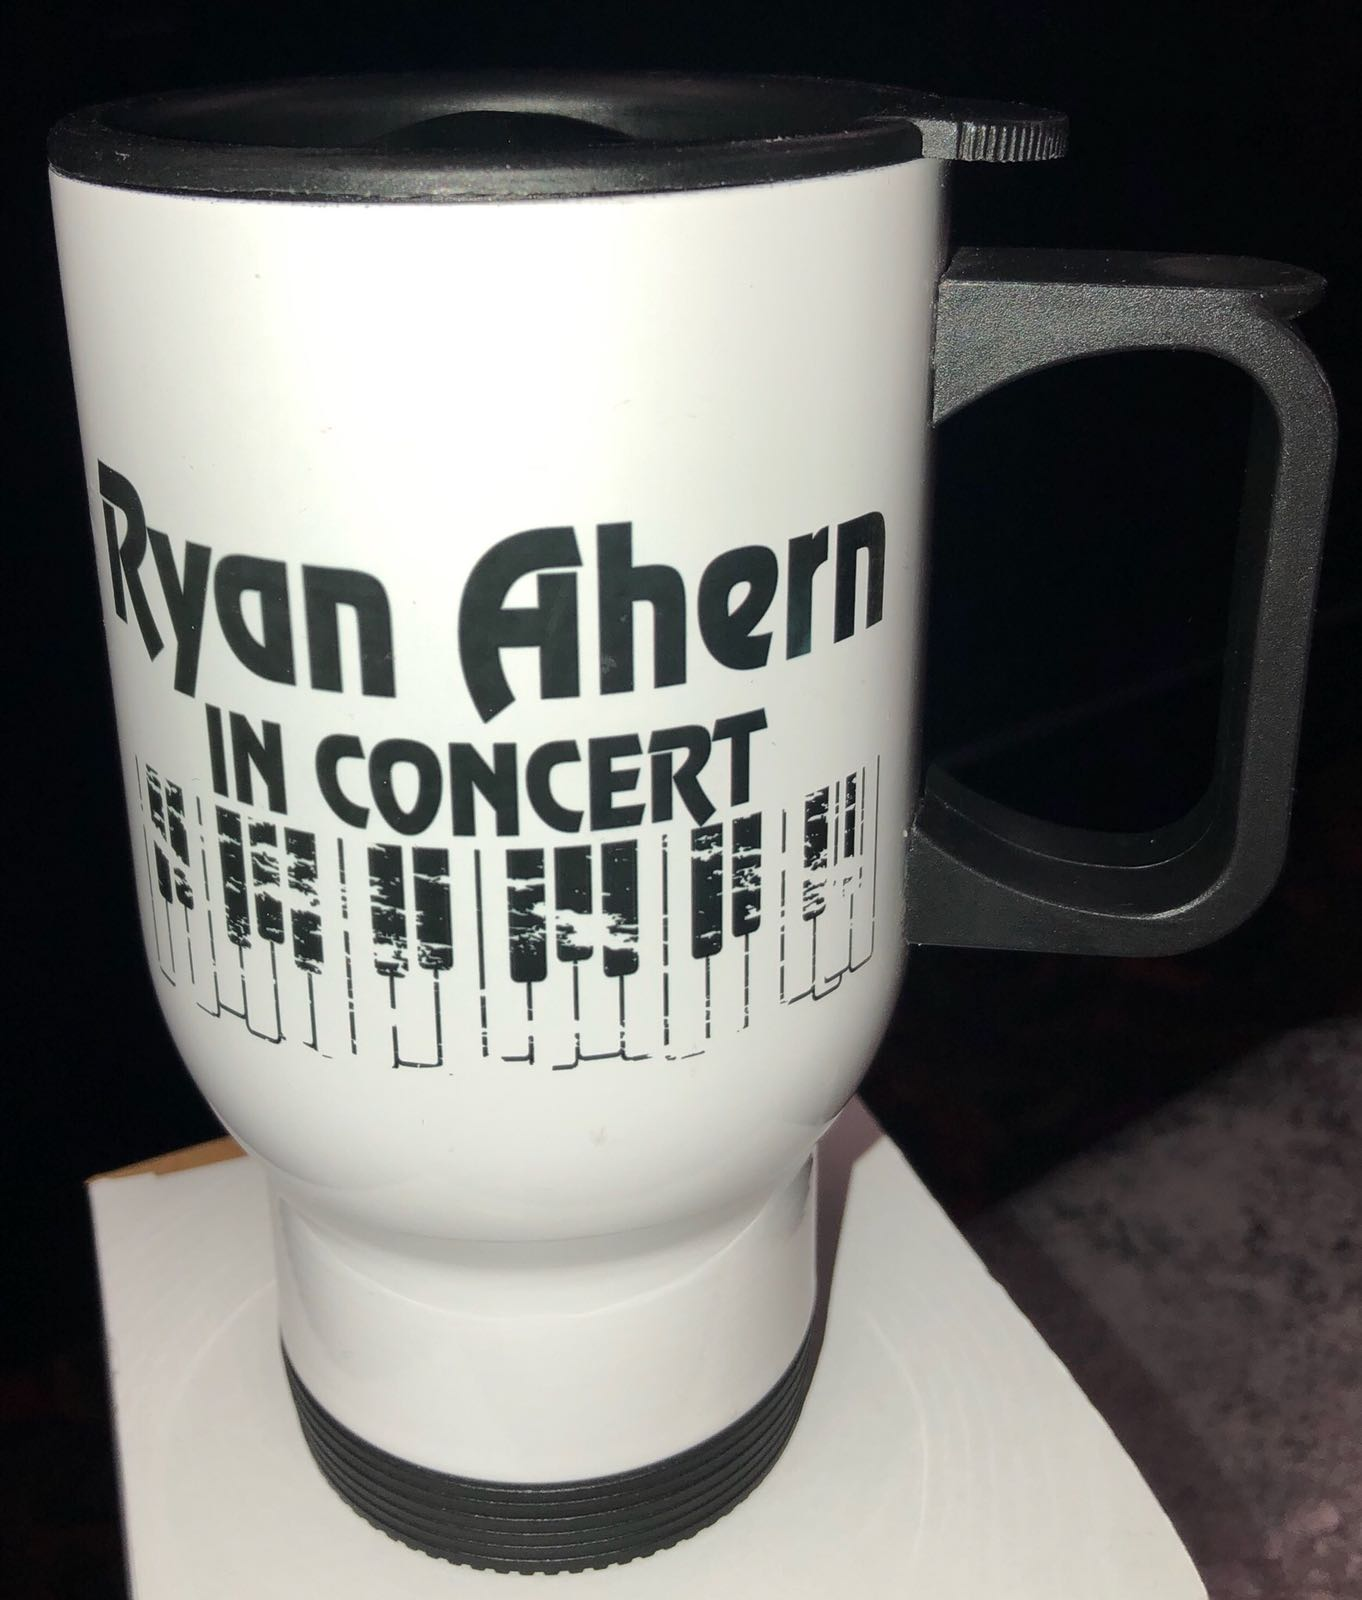 Ryan Ahern in Concert - Steel Coffee Tumbler